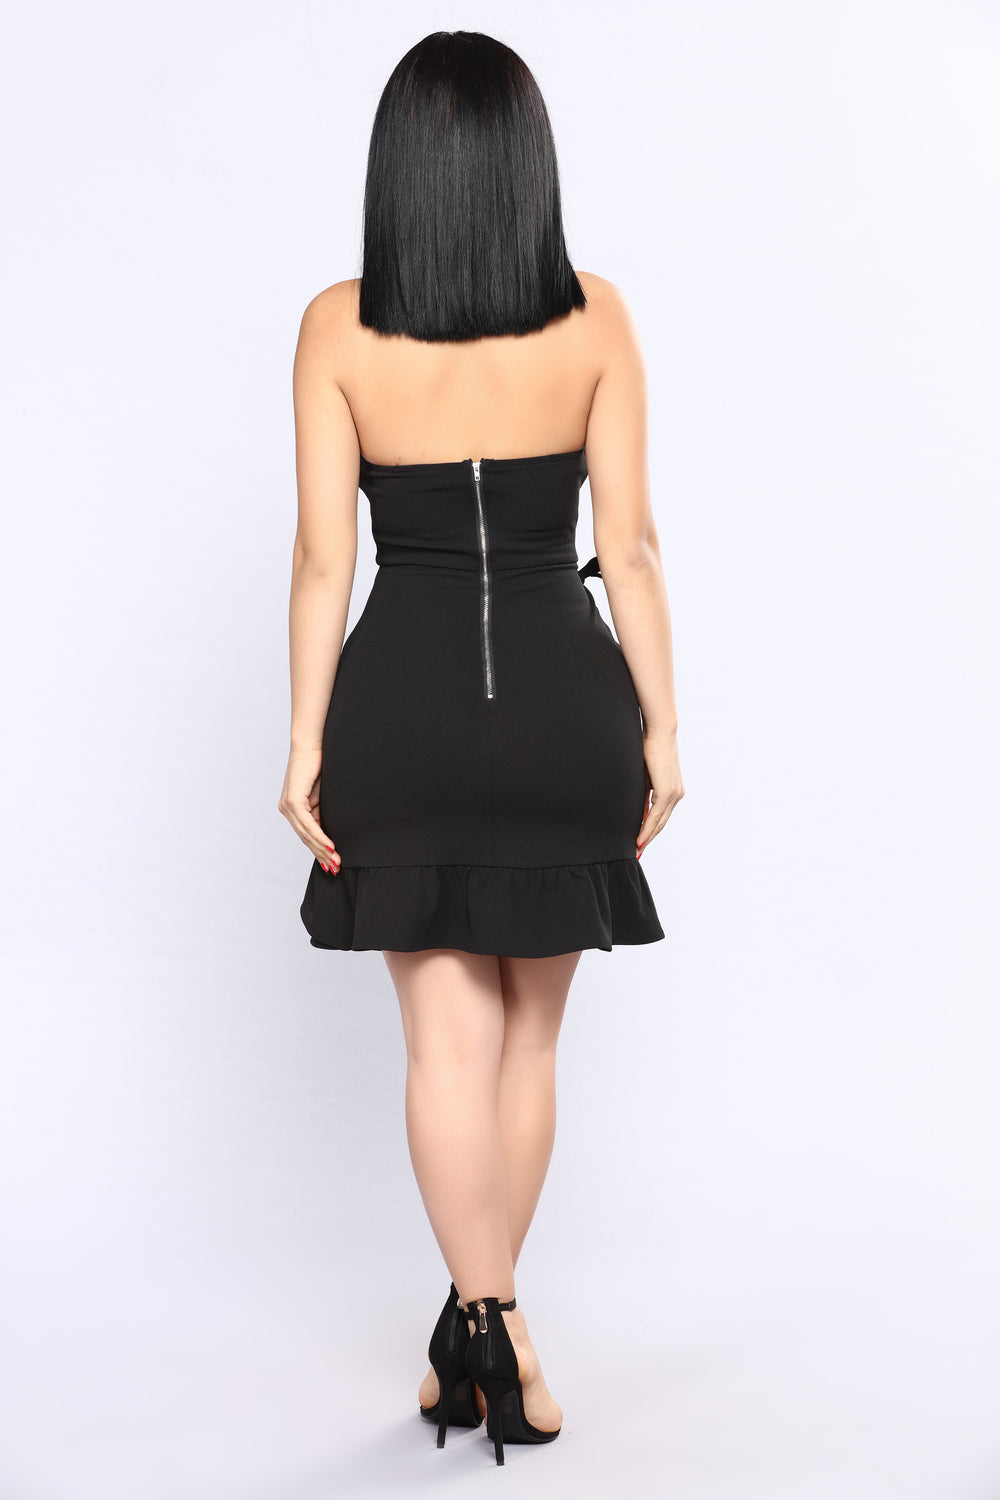 Places To Be Ruffle Dress - Black